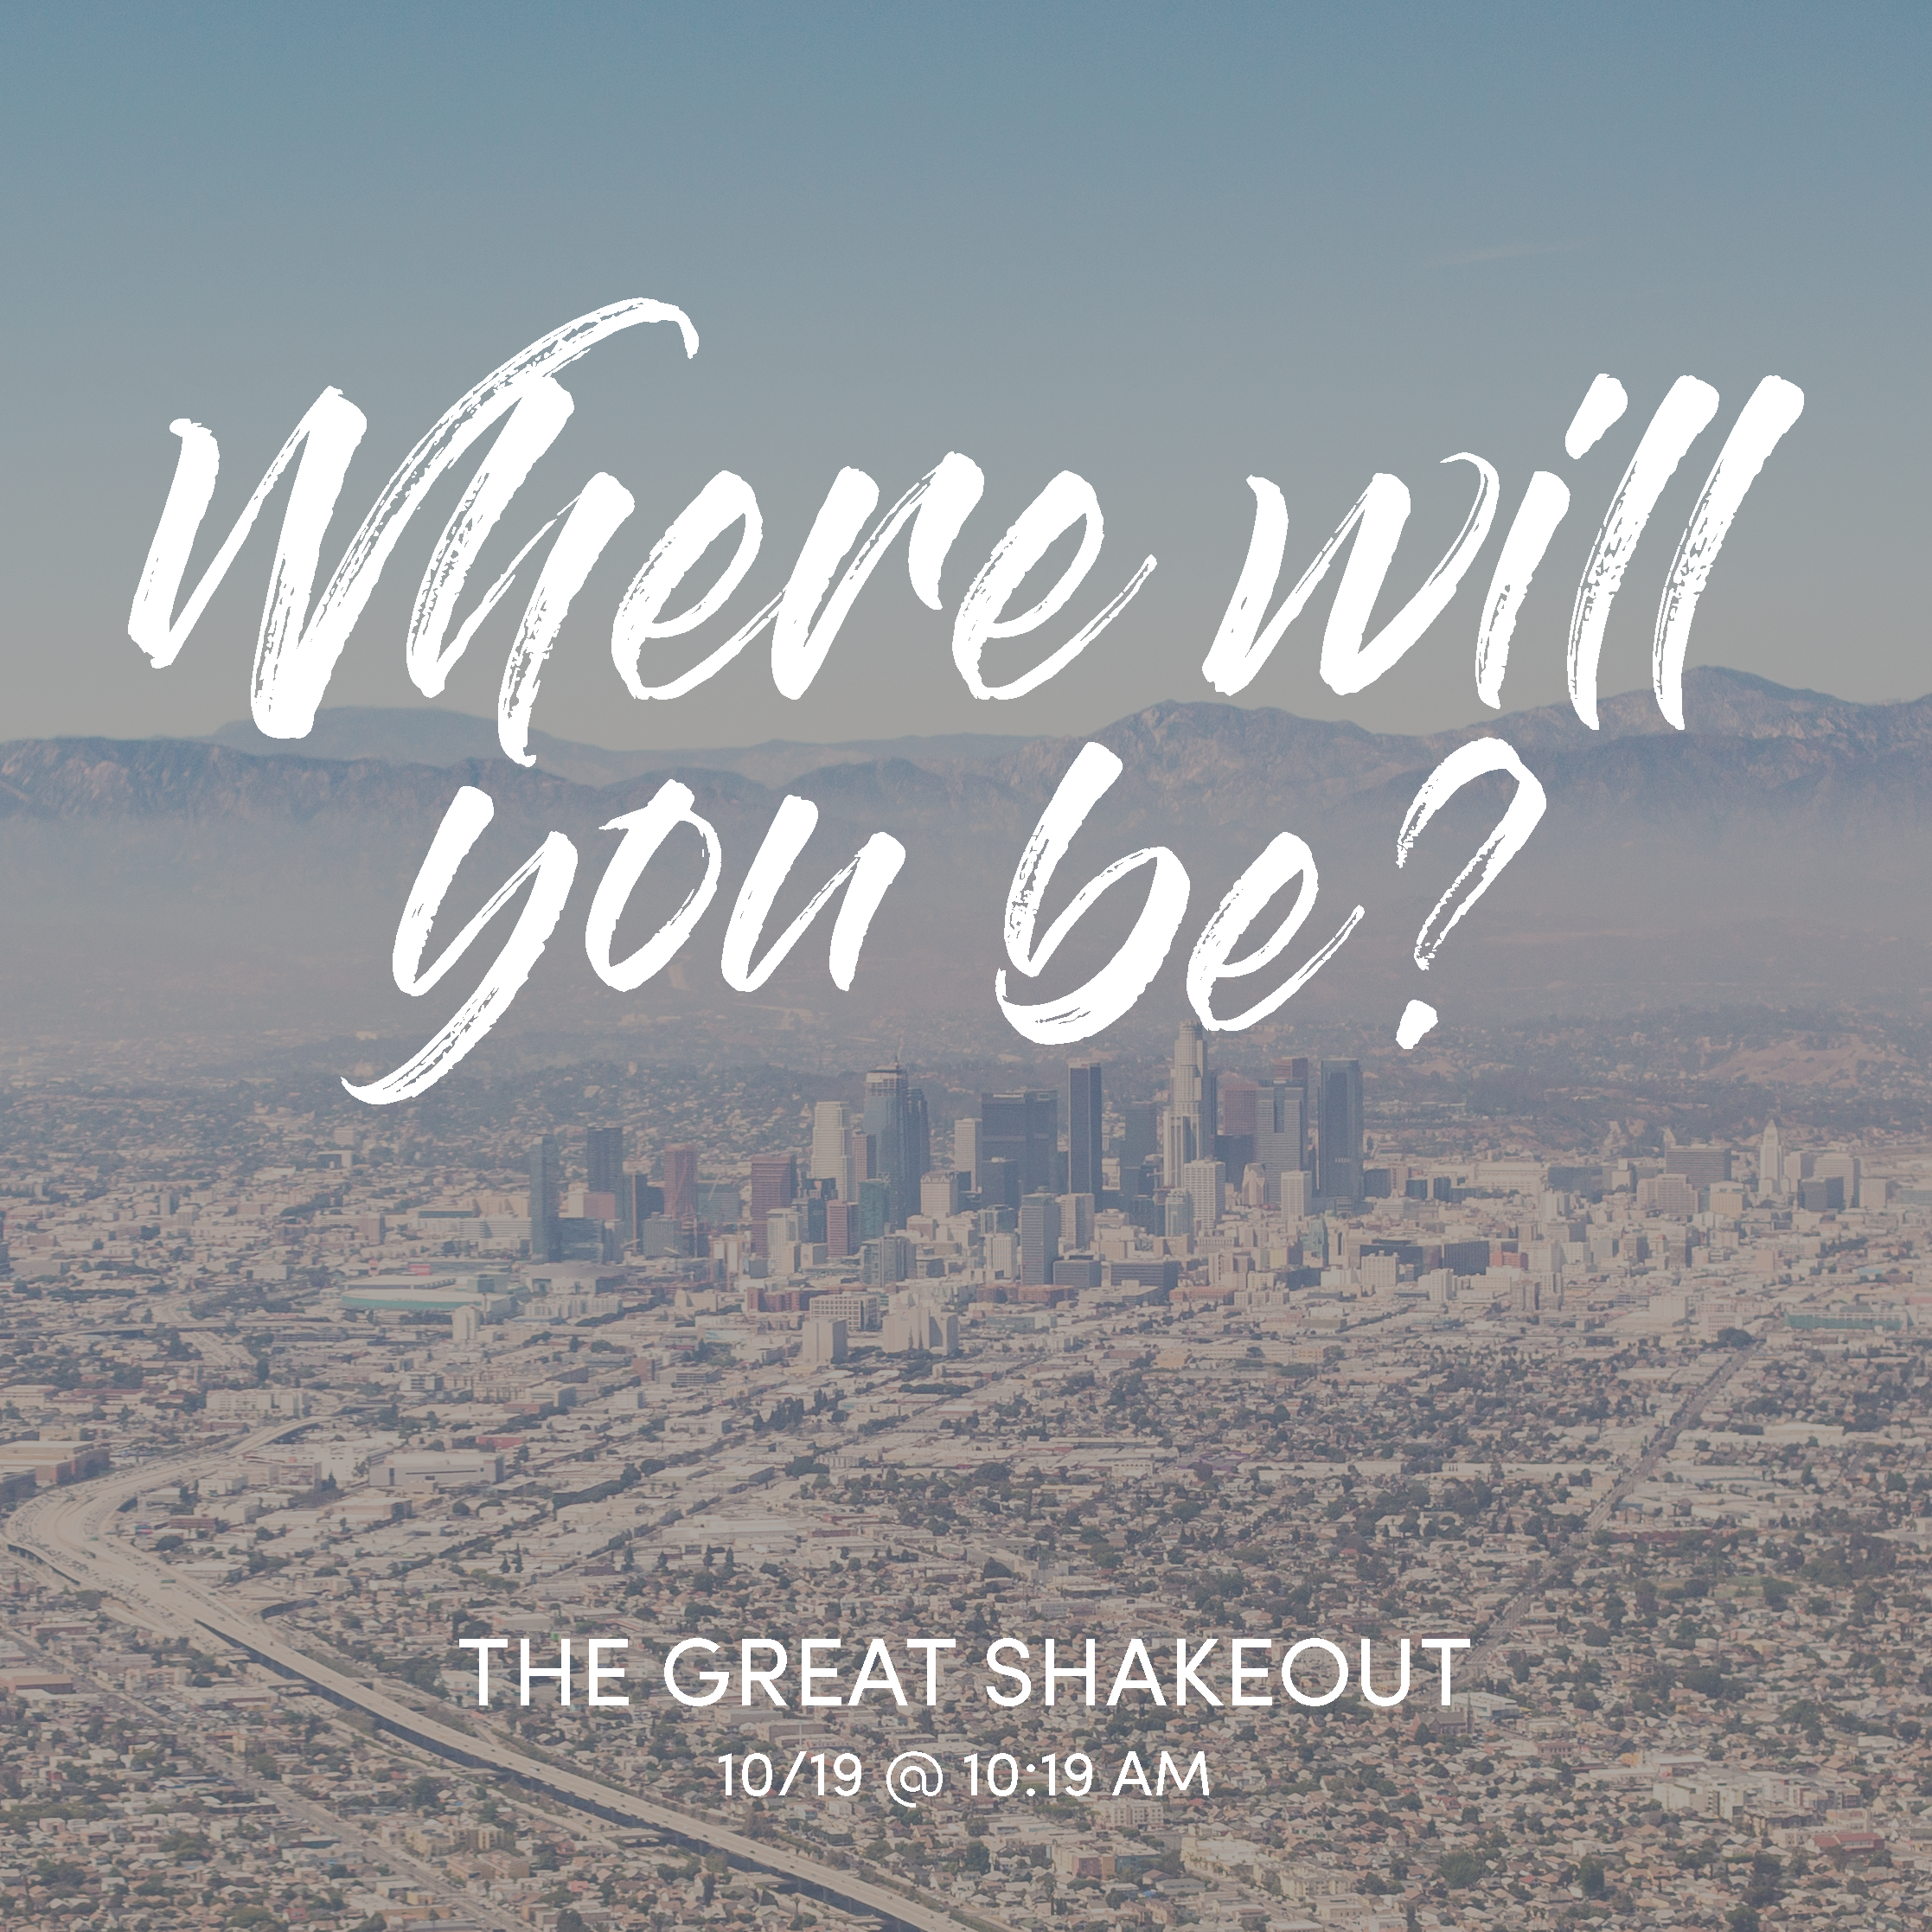 The Great ShakeOut on Thursday October 19 at 10:19 AM